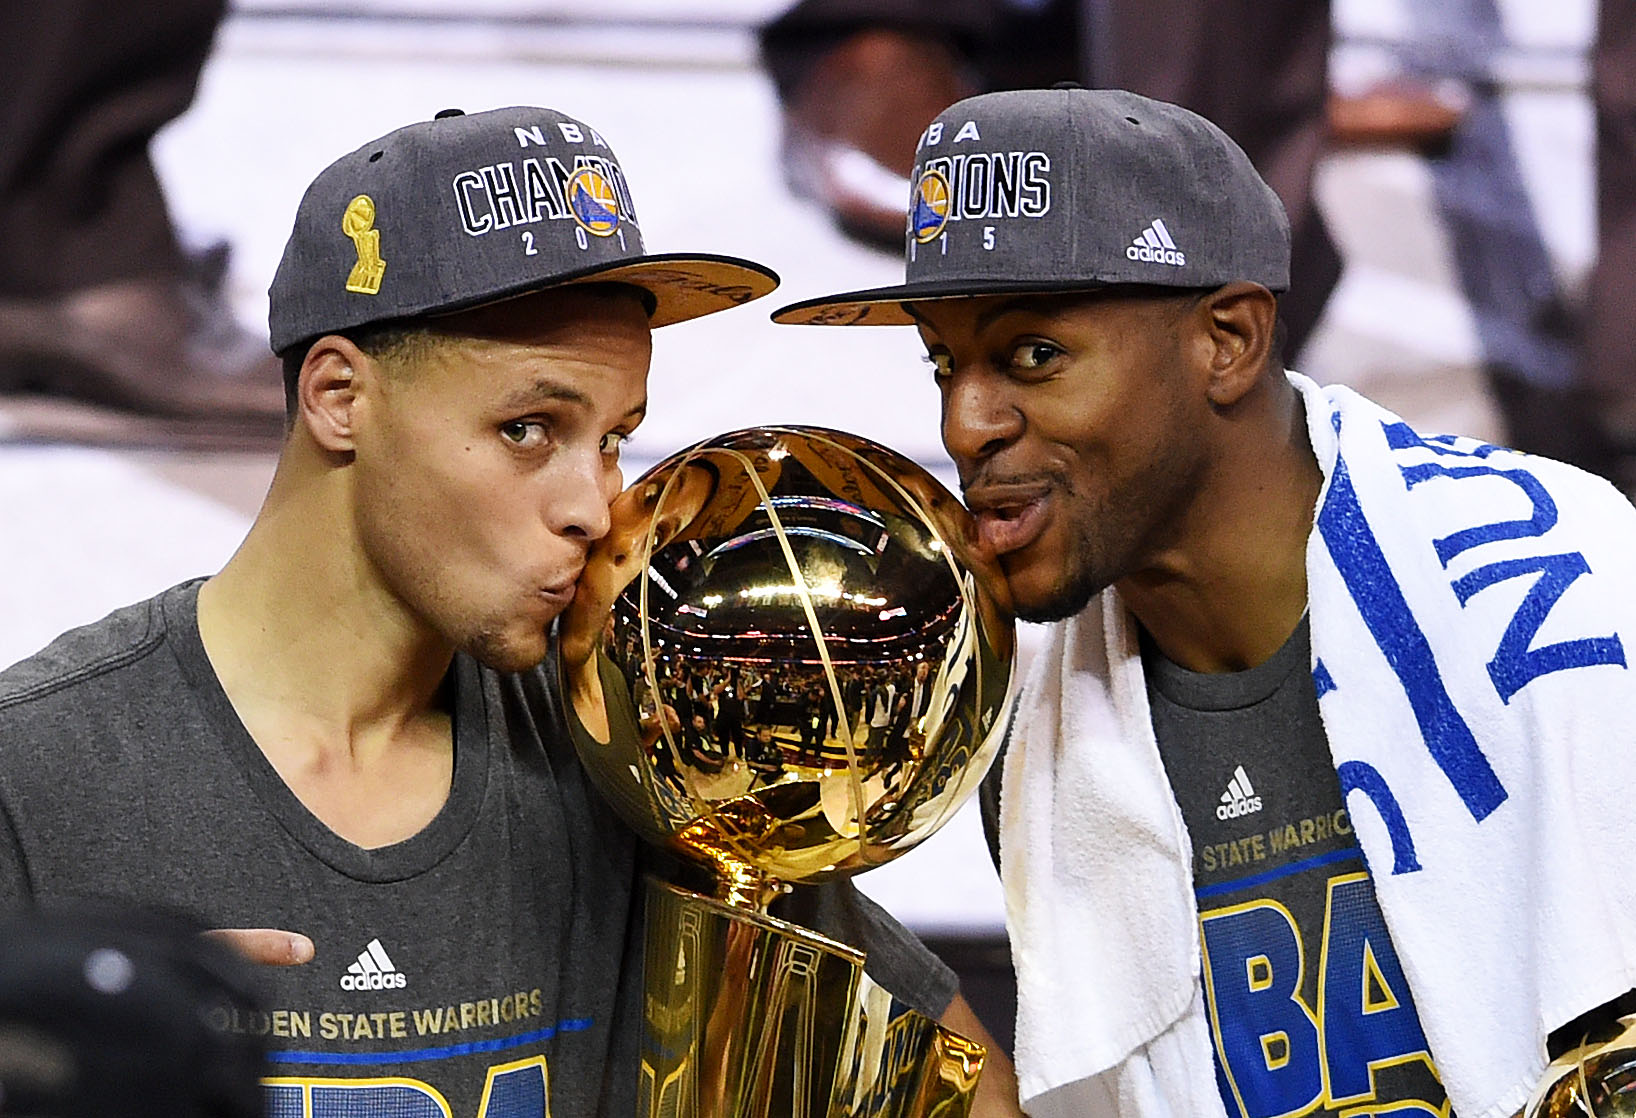 CLEVELAND, OH - JUNE 16:  Stephen Curry #30 and Andre Iguodala #9 of the Golden State Warriors celebrate with the Larry O'Brien NBA Championship Trophy after defeating the Cleveland Cavaliers in Game Six of the 2015 NBA Finals at Quicken Loans Arena on Ju